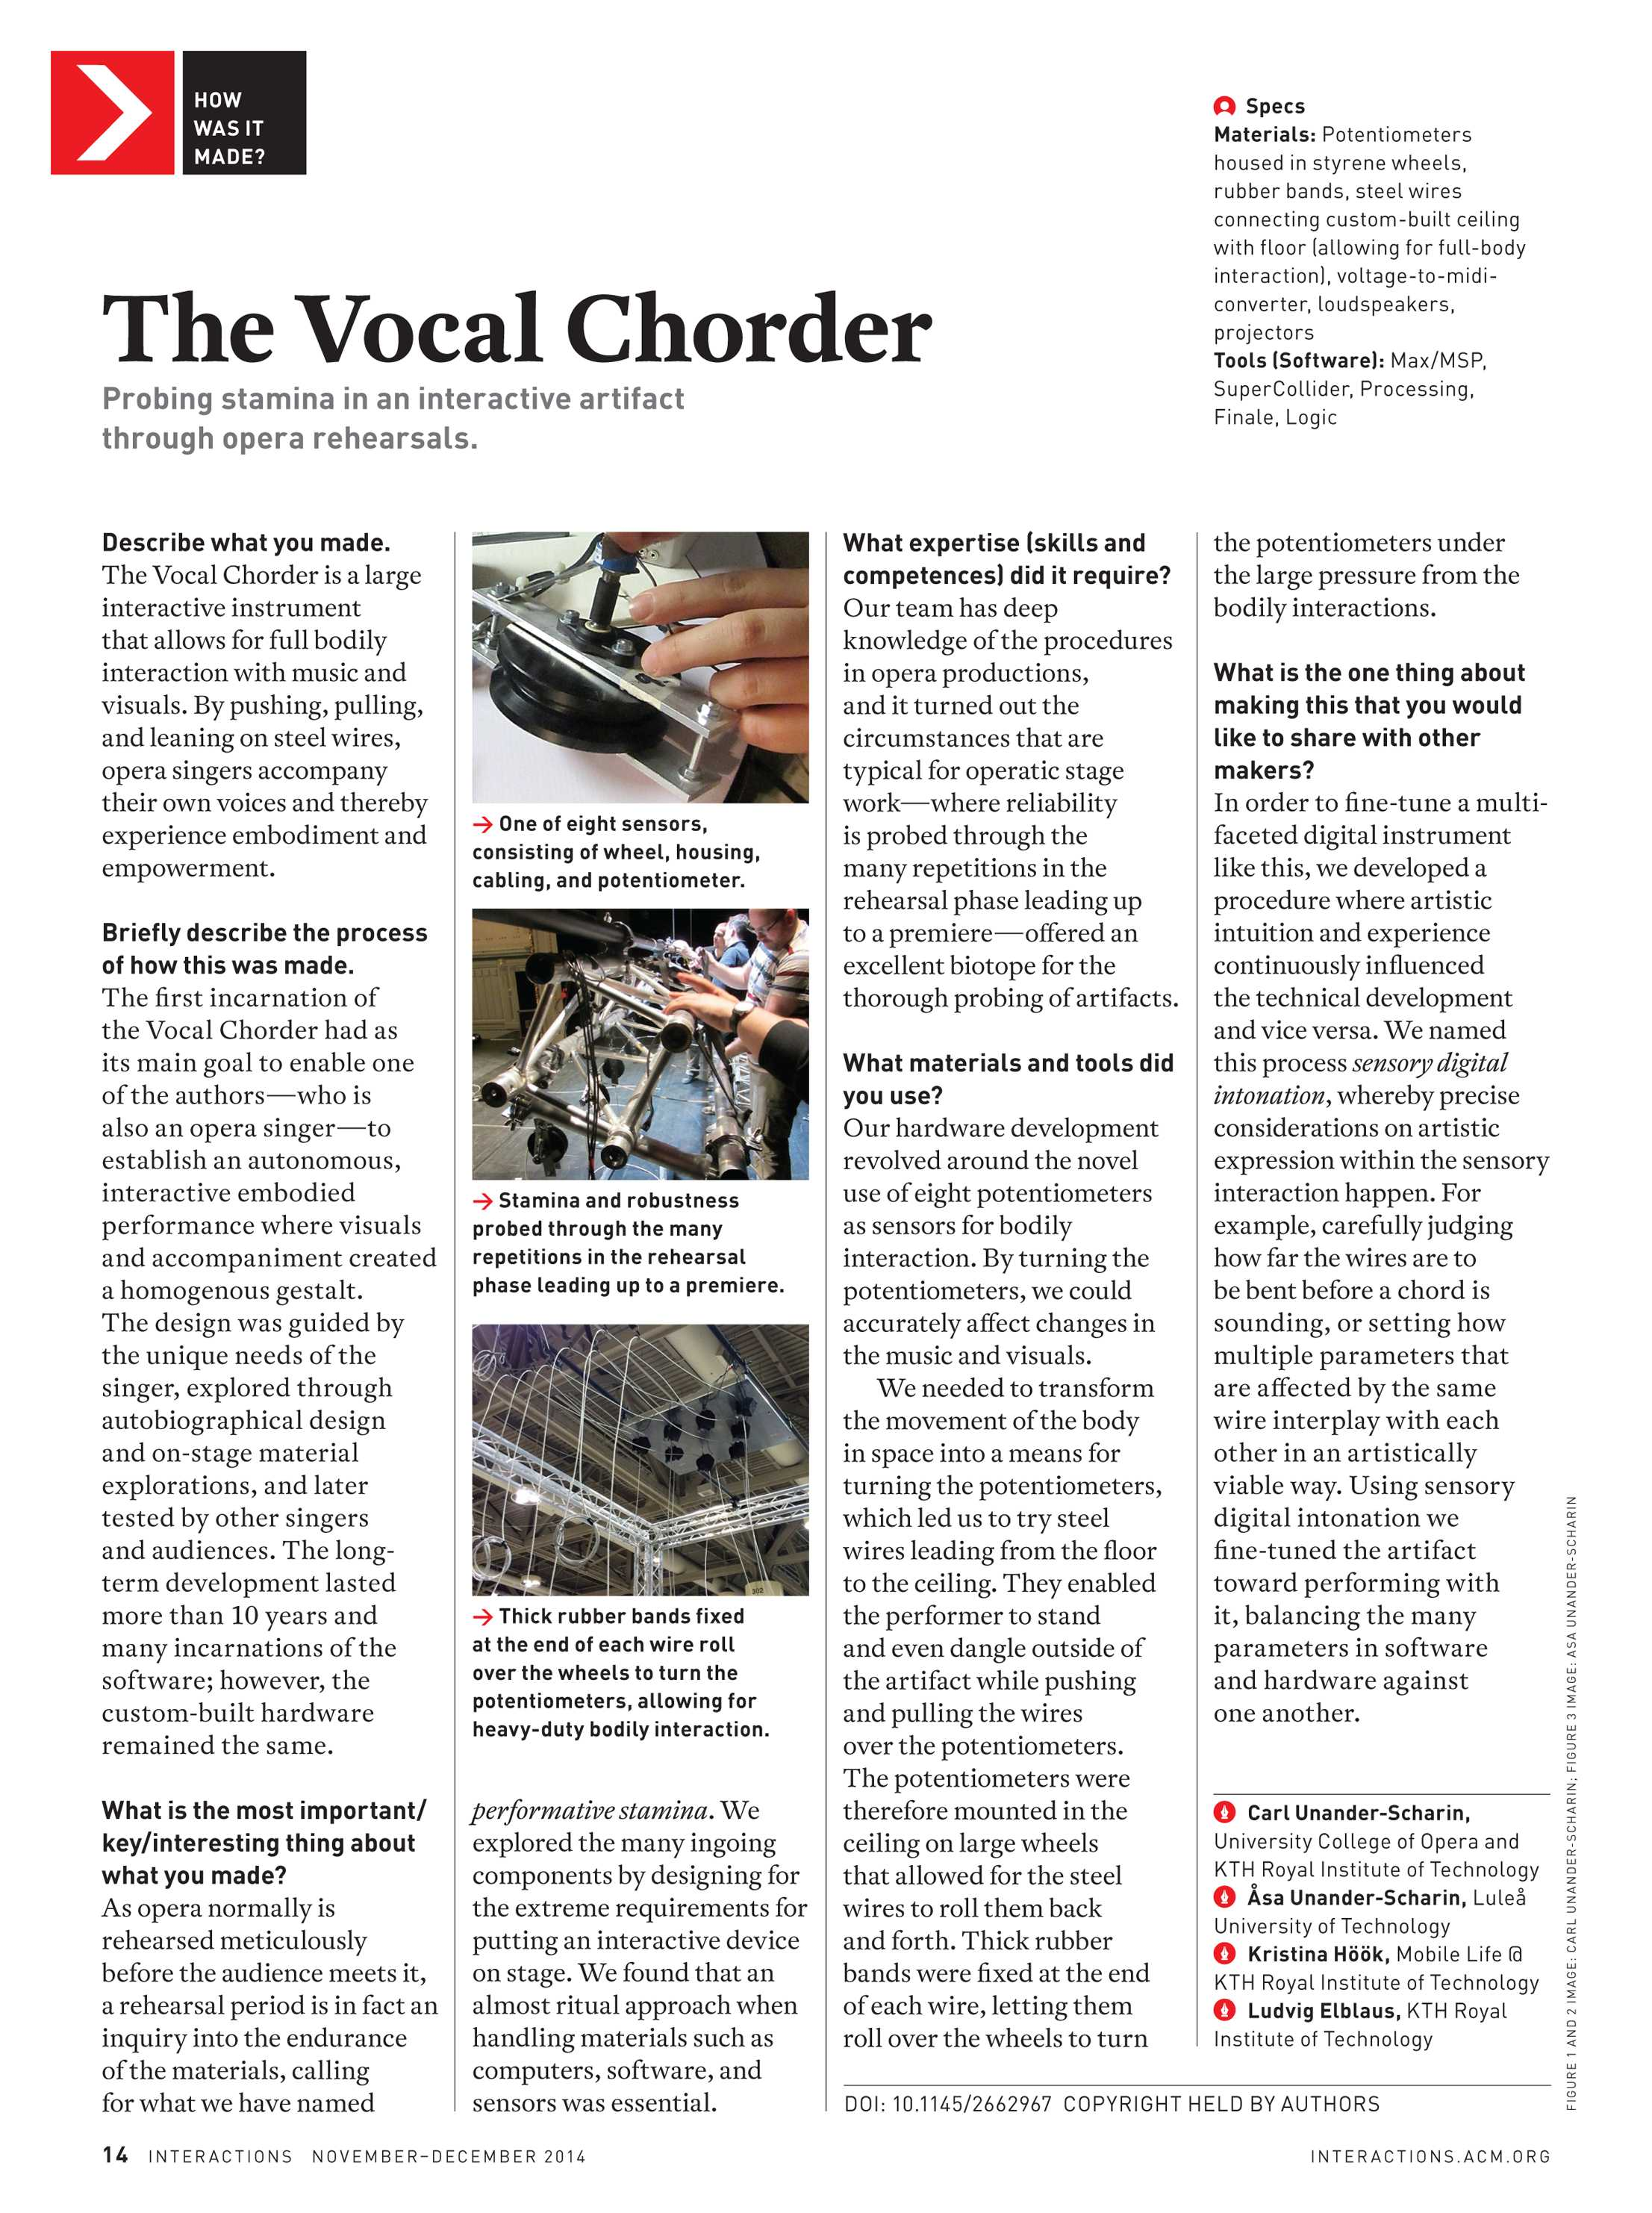 Interactions November December 2014 Page 14 Wiring 2 Potentiometers In Series